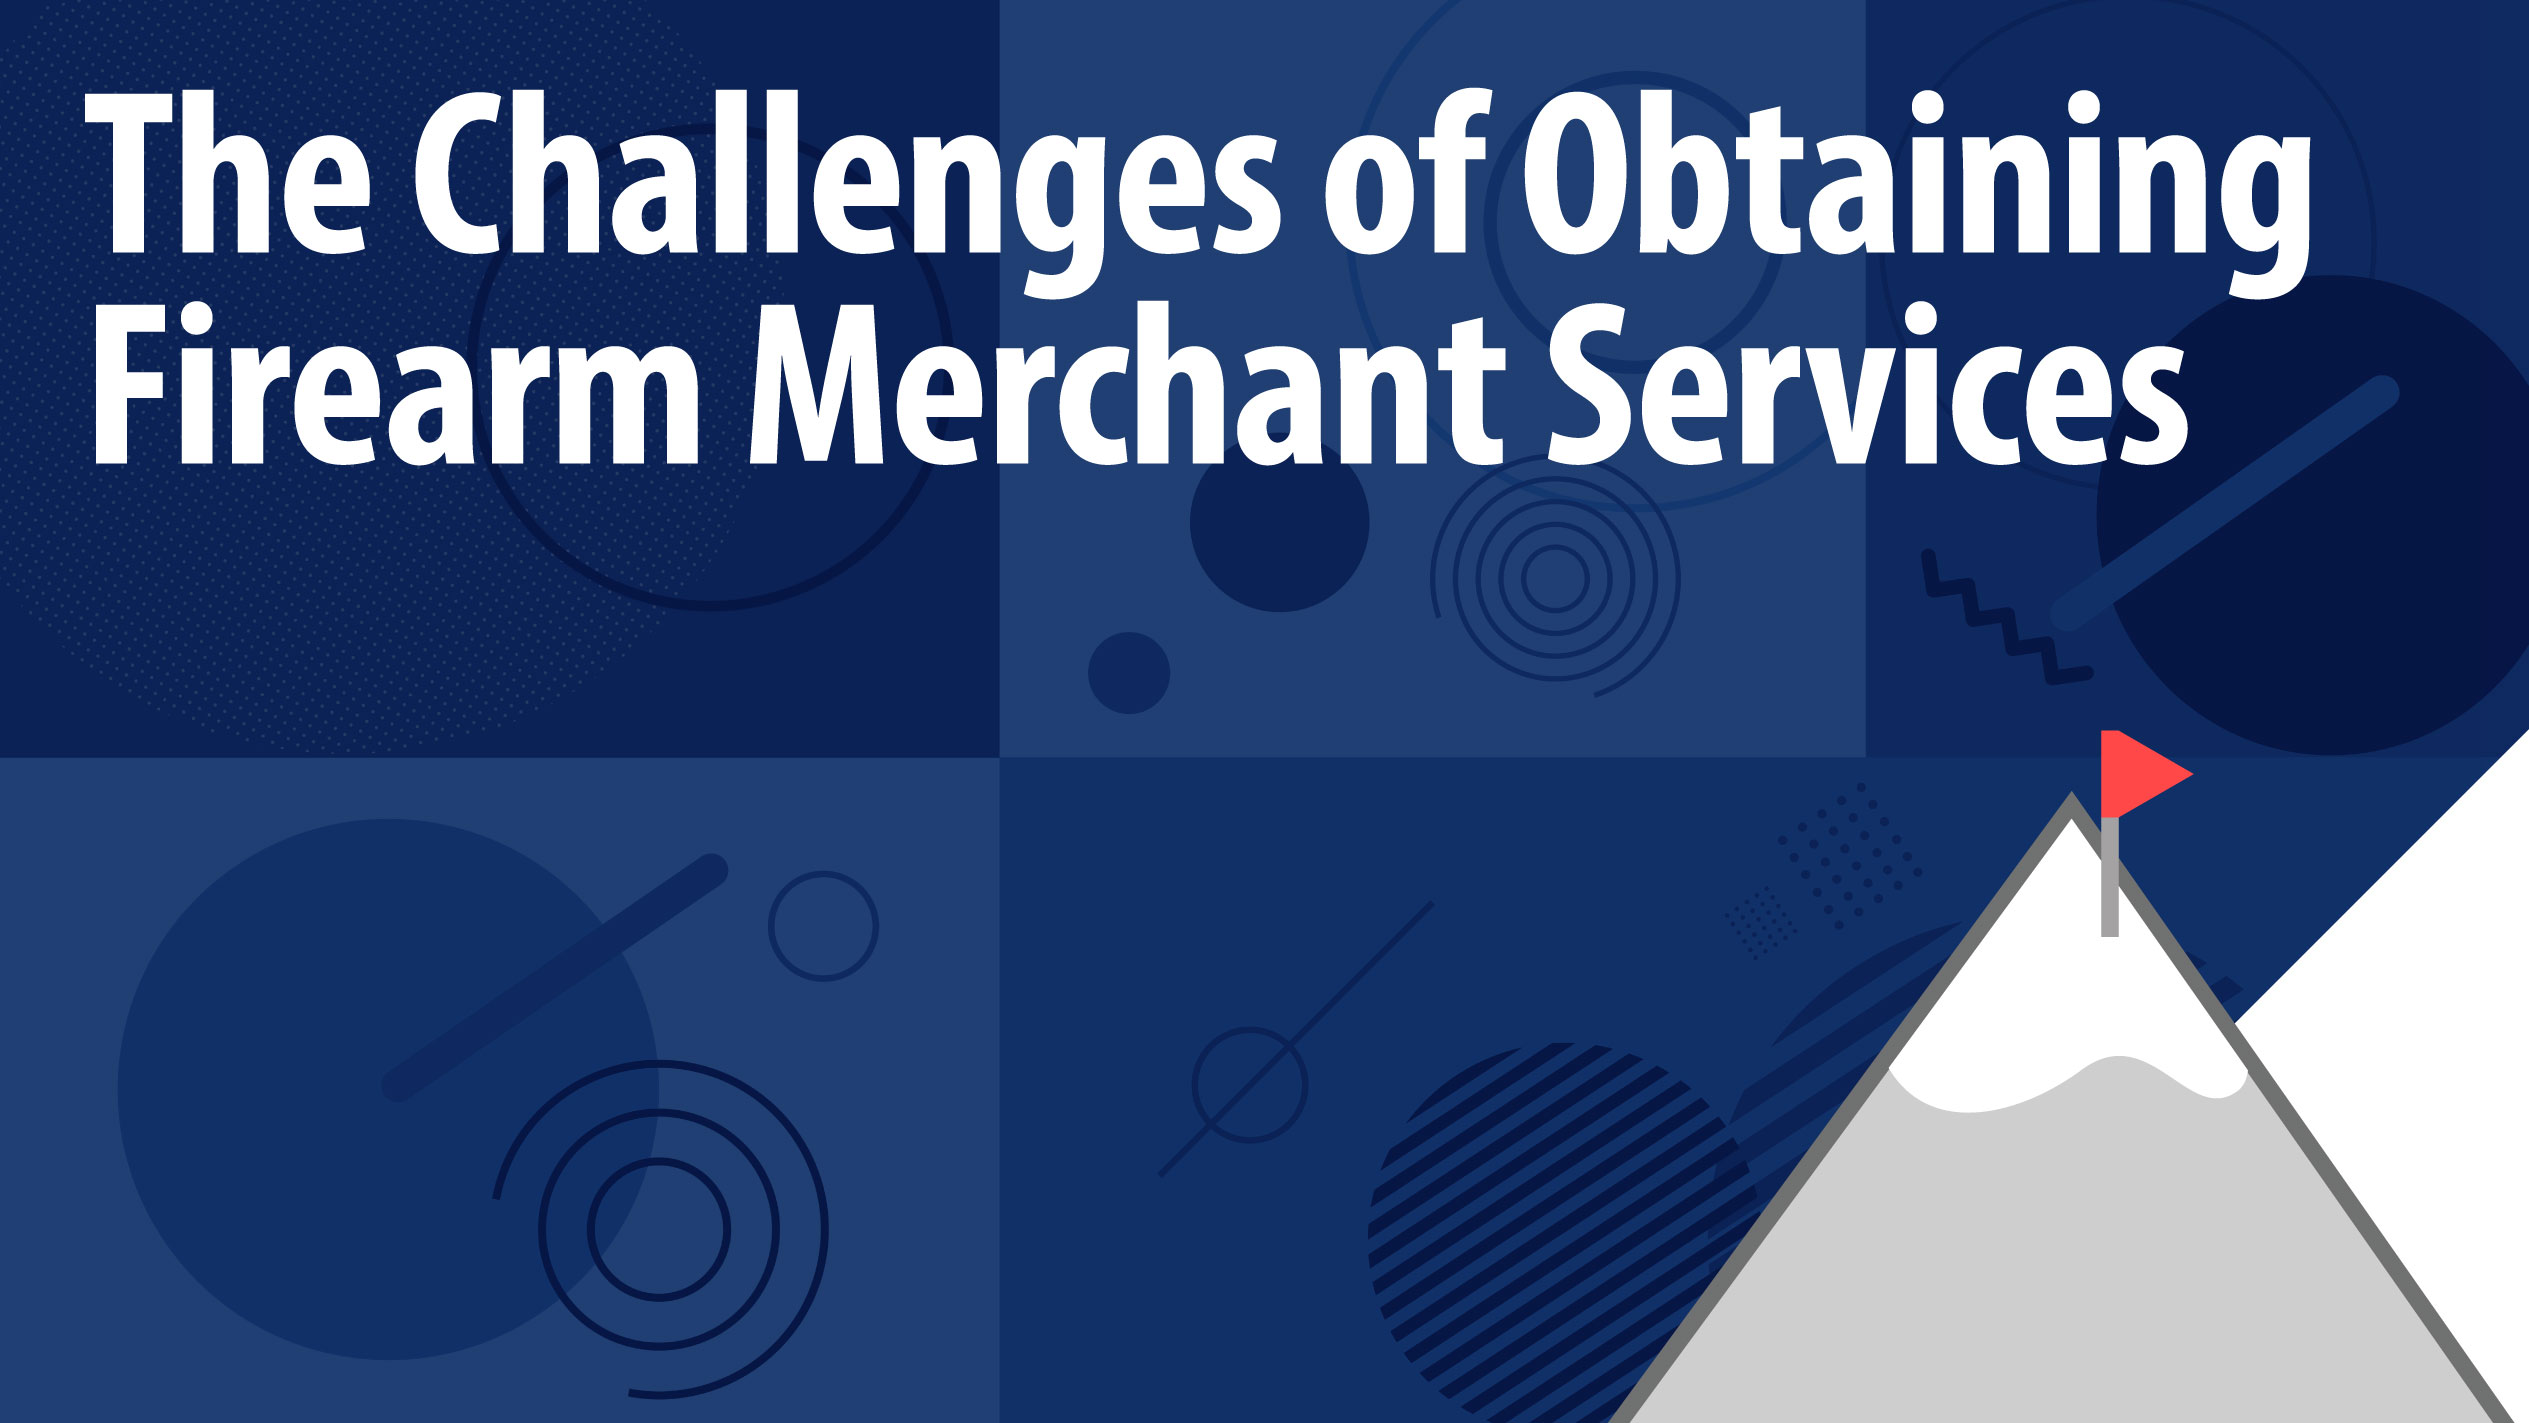 The Challenges of Obtaining Firearm Merchant Services